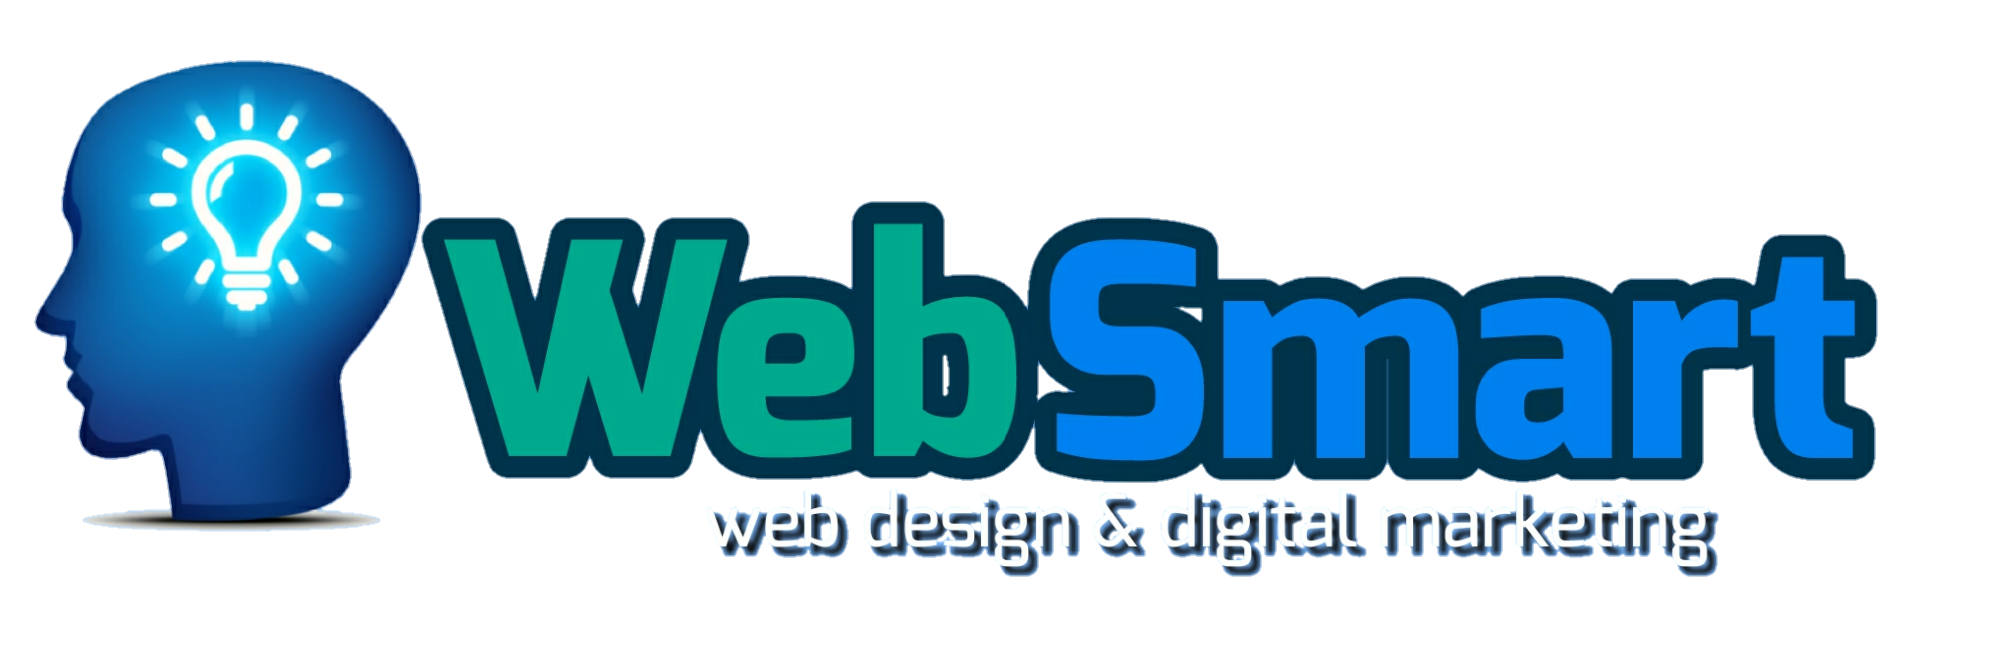 Websmart Web Design $ Digital Marketing